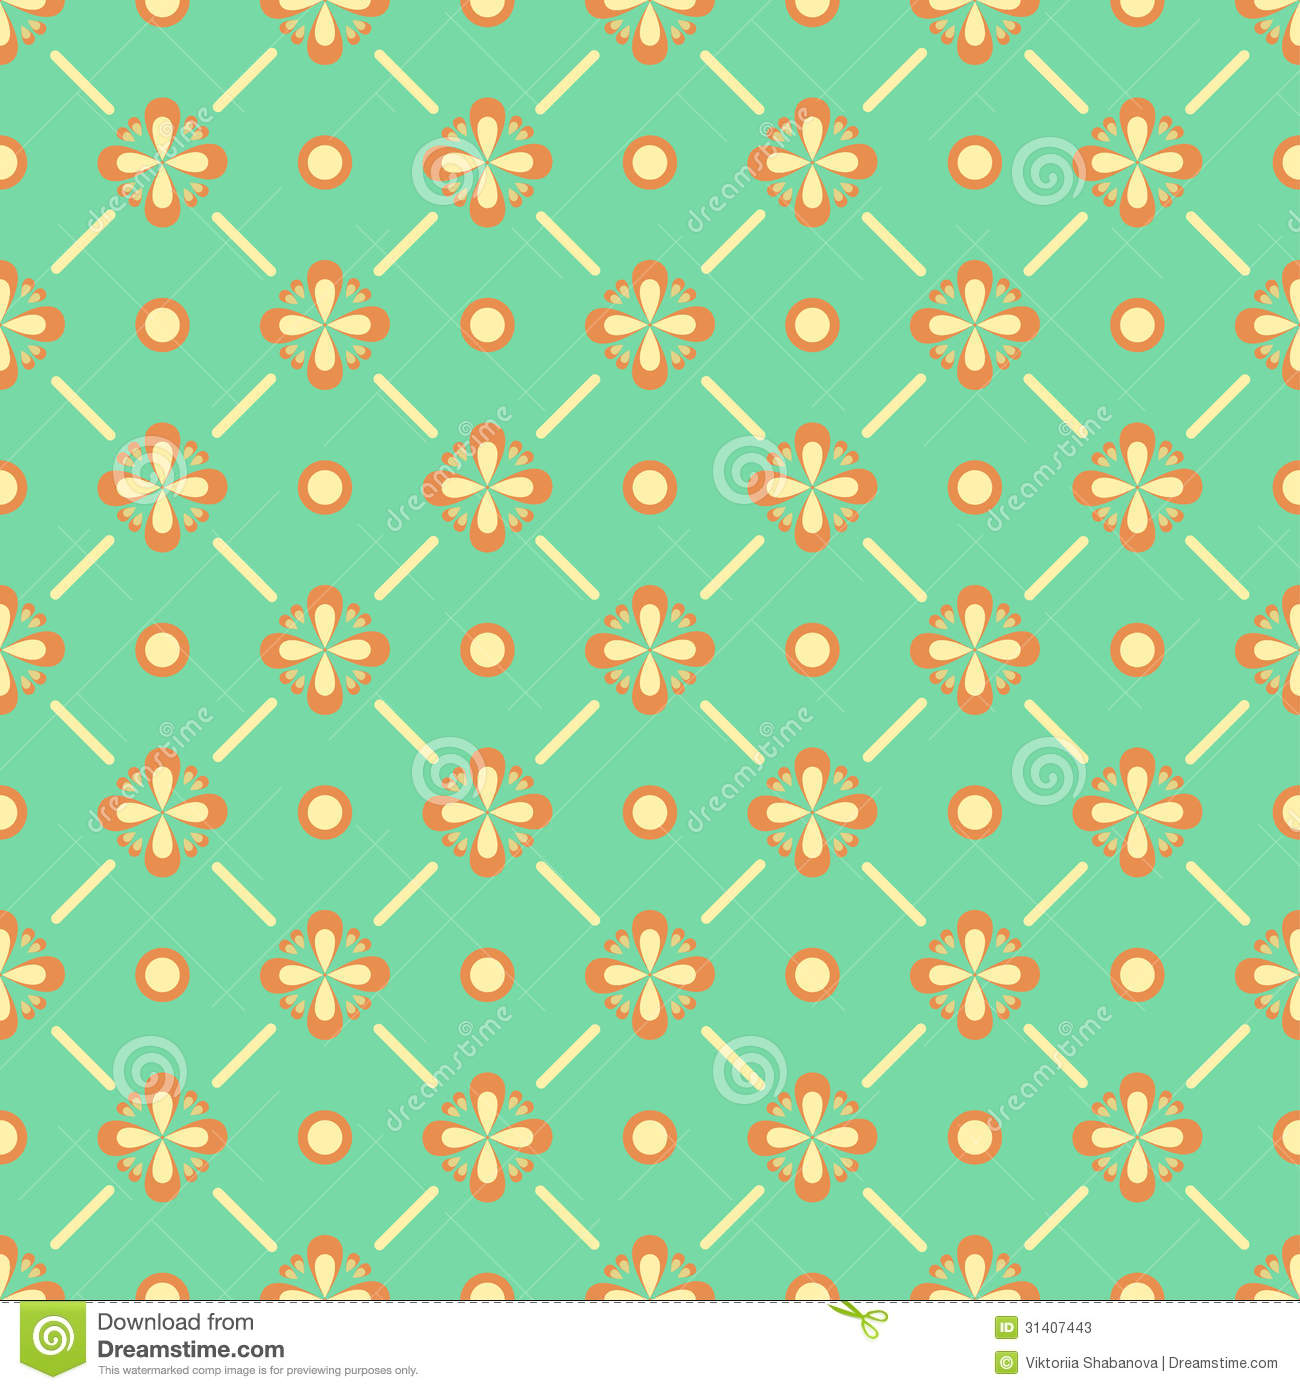 seamless floral pattern with geometric stylized flowers stock photos - Decorative Paper